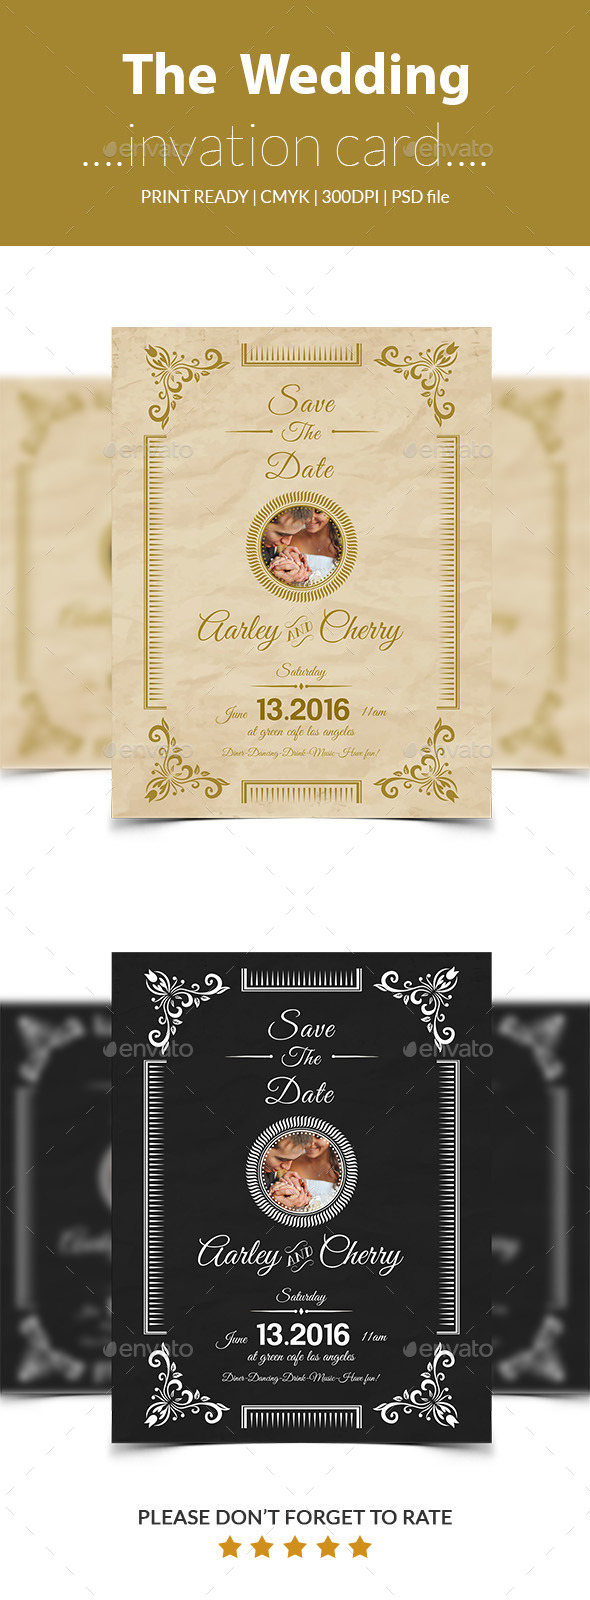 wedding inviation card